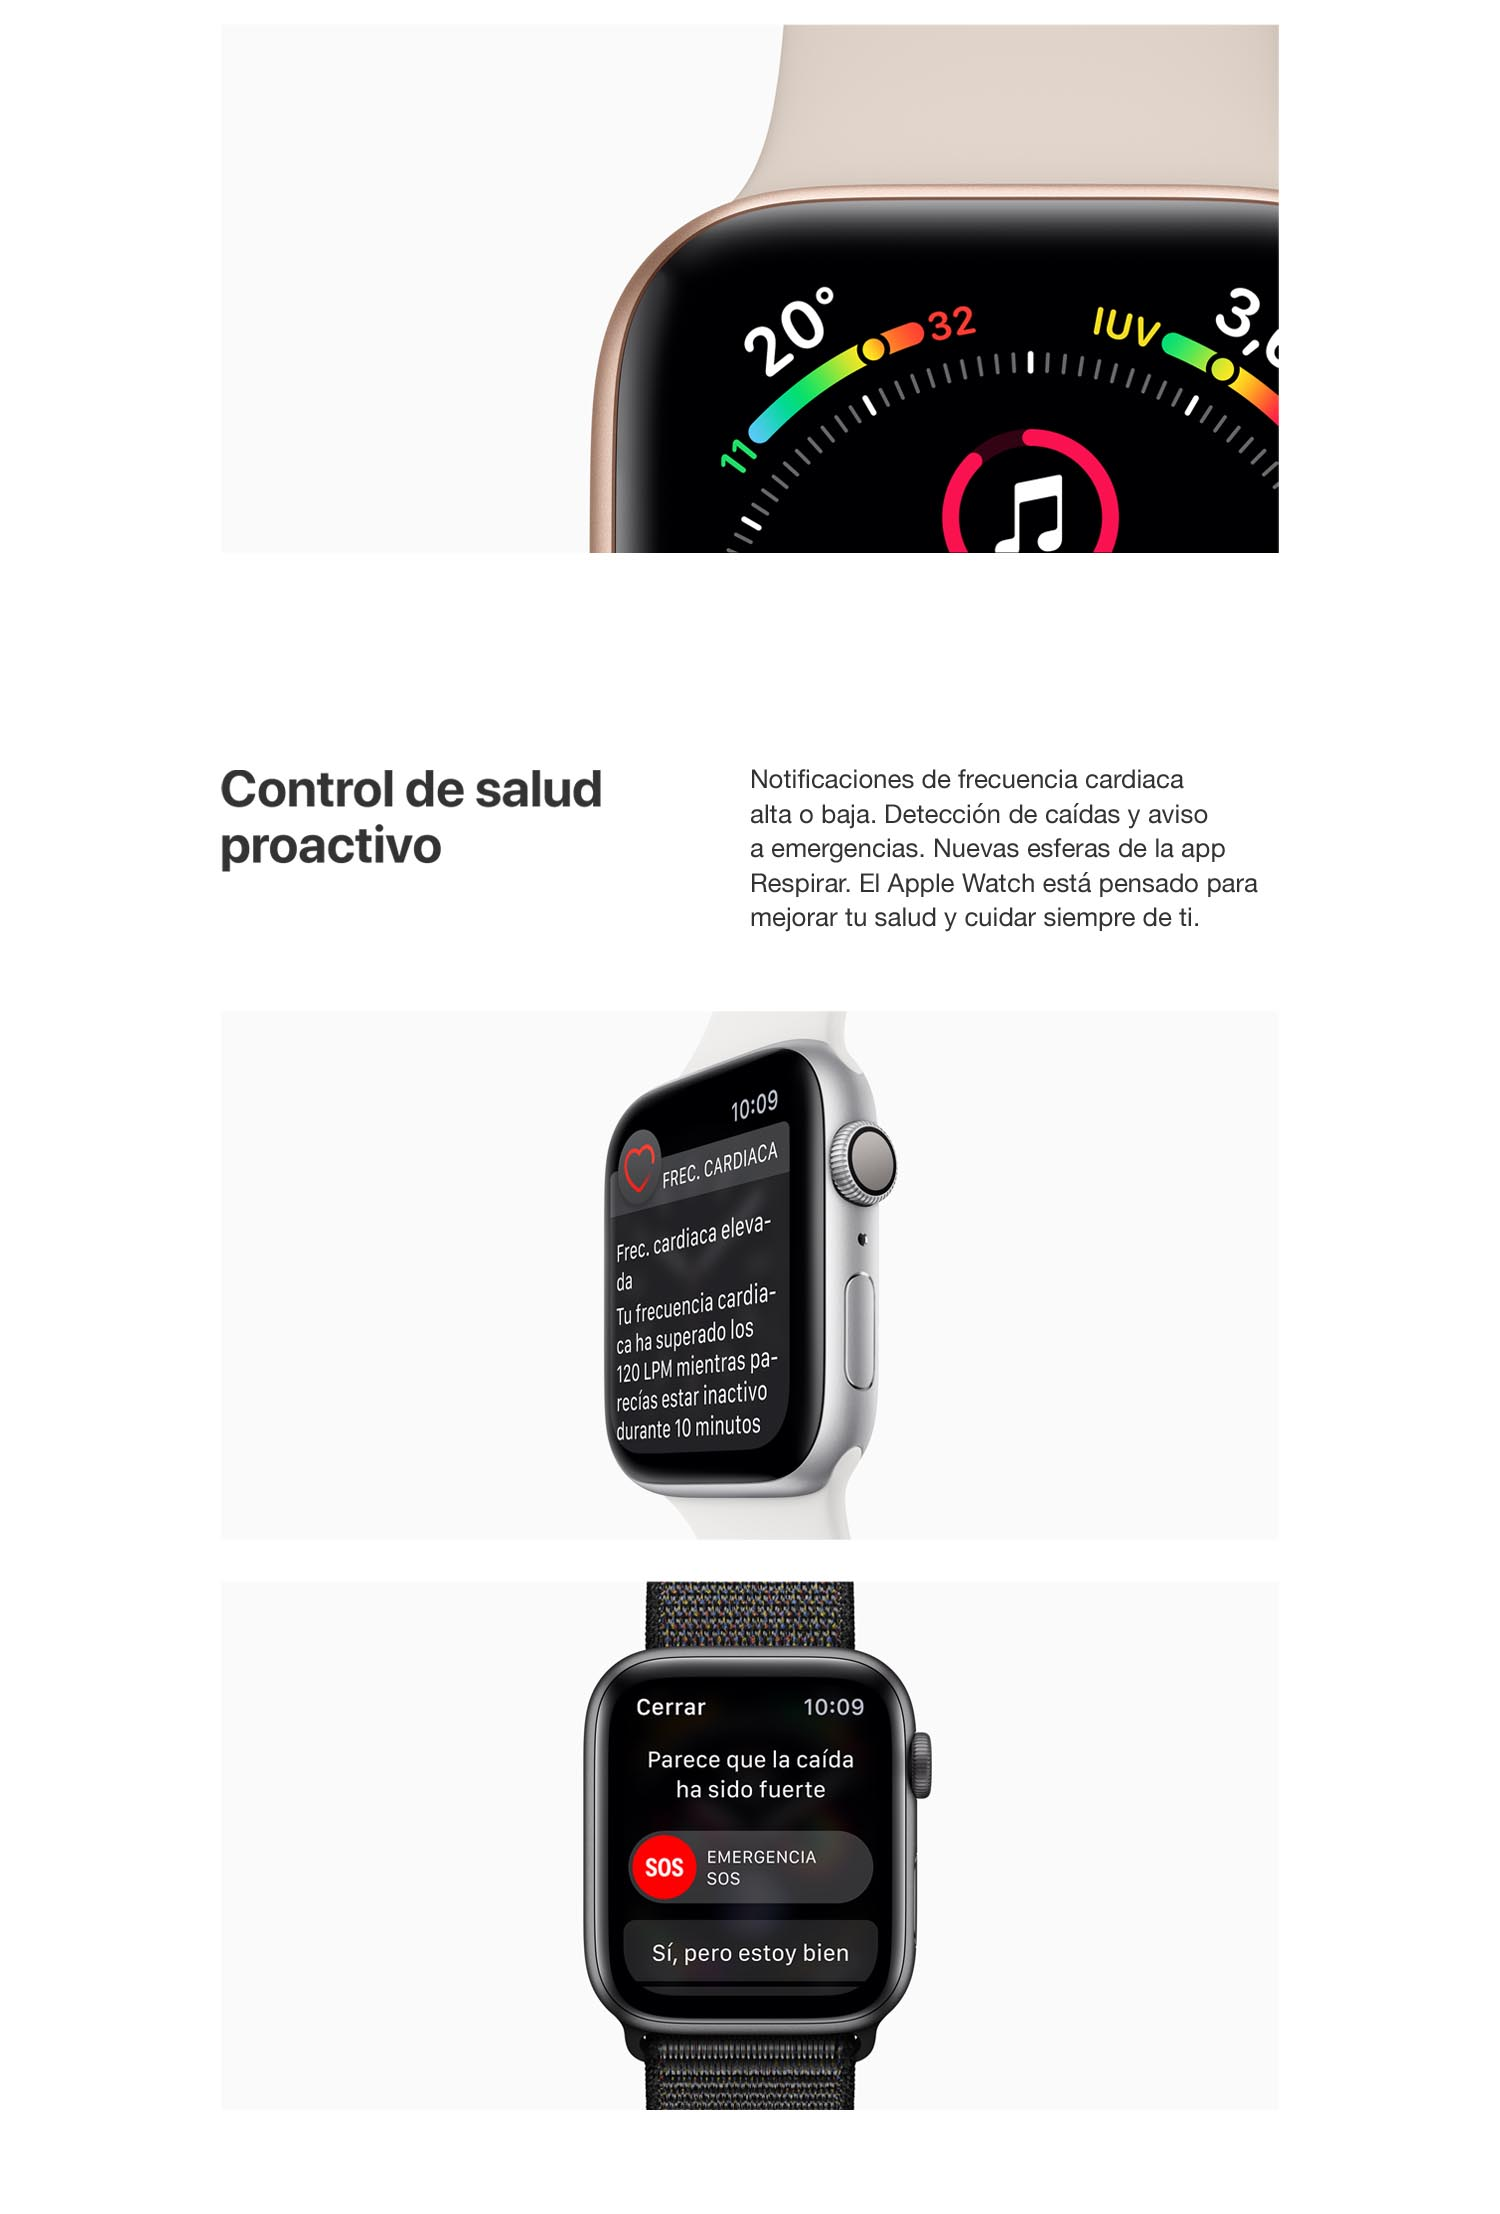 Compare Productos de Apple Watch